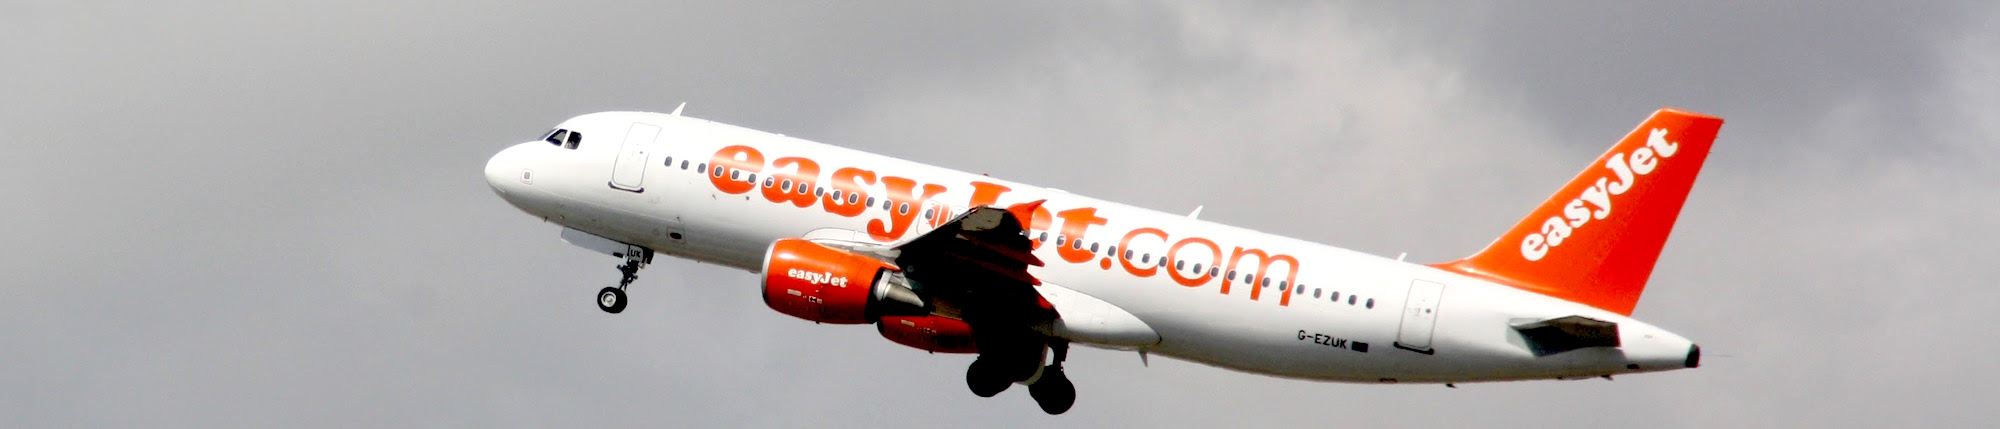 Best time to book flights for London (LGW) to Malaga (AGP) flights with EasyJet at AirHint